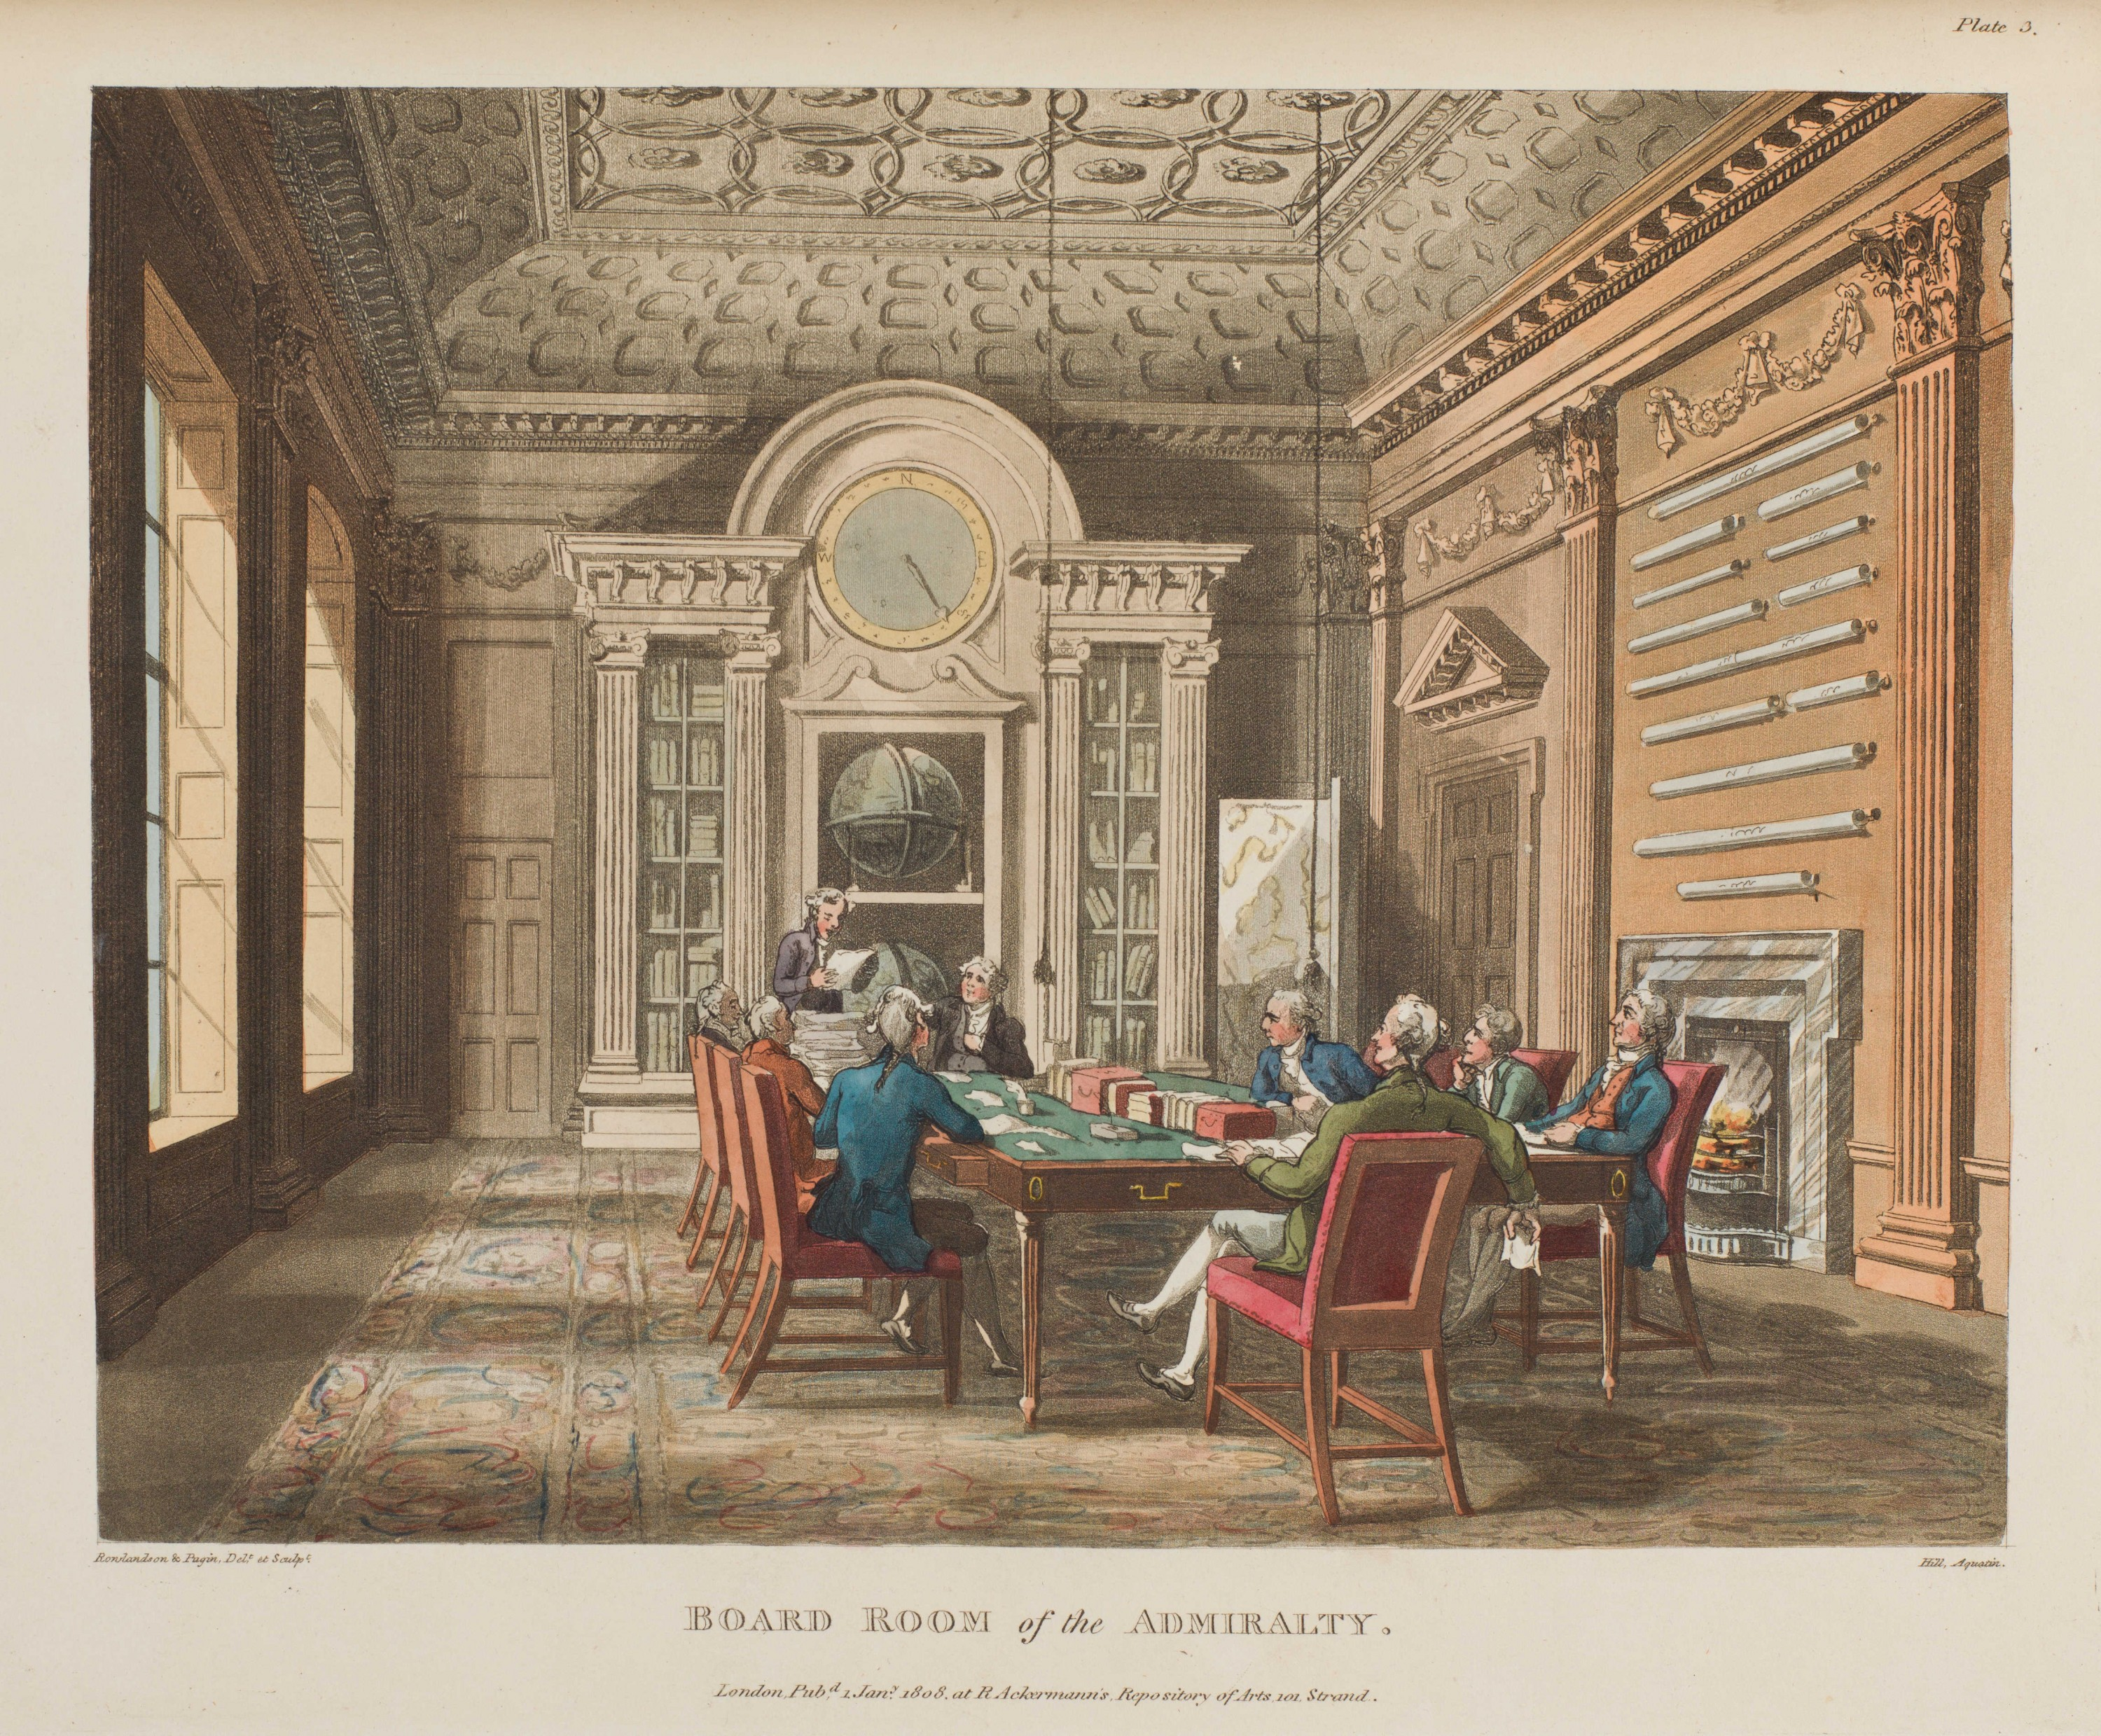 003 - Board Room of the Admiralty